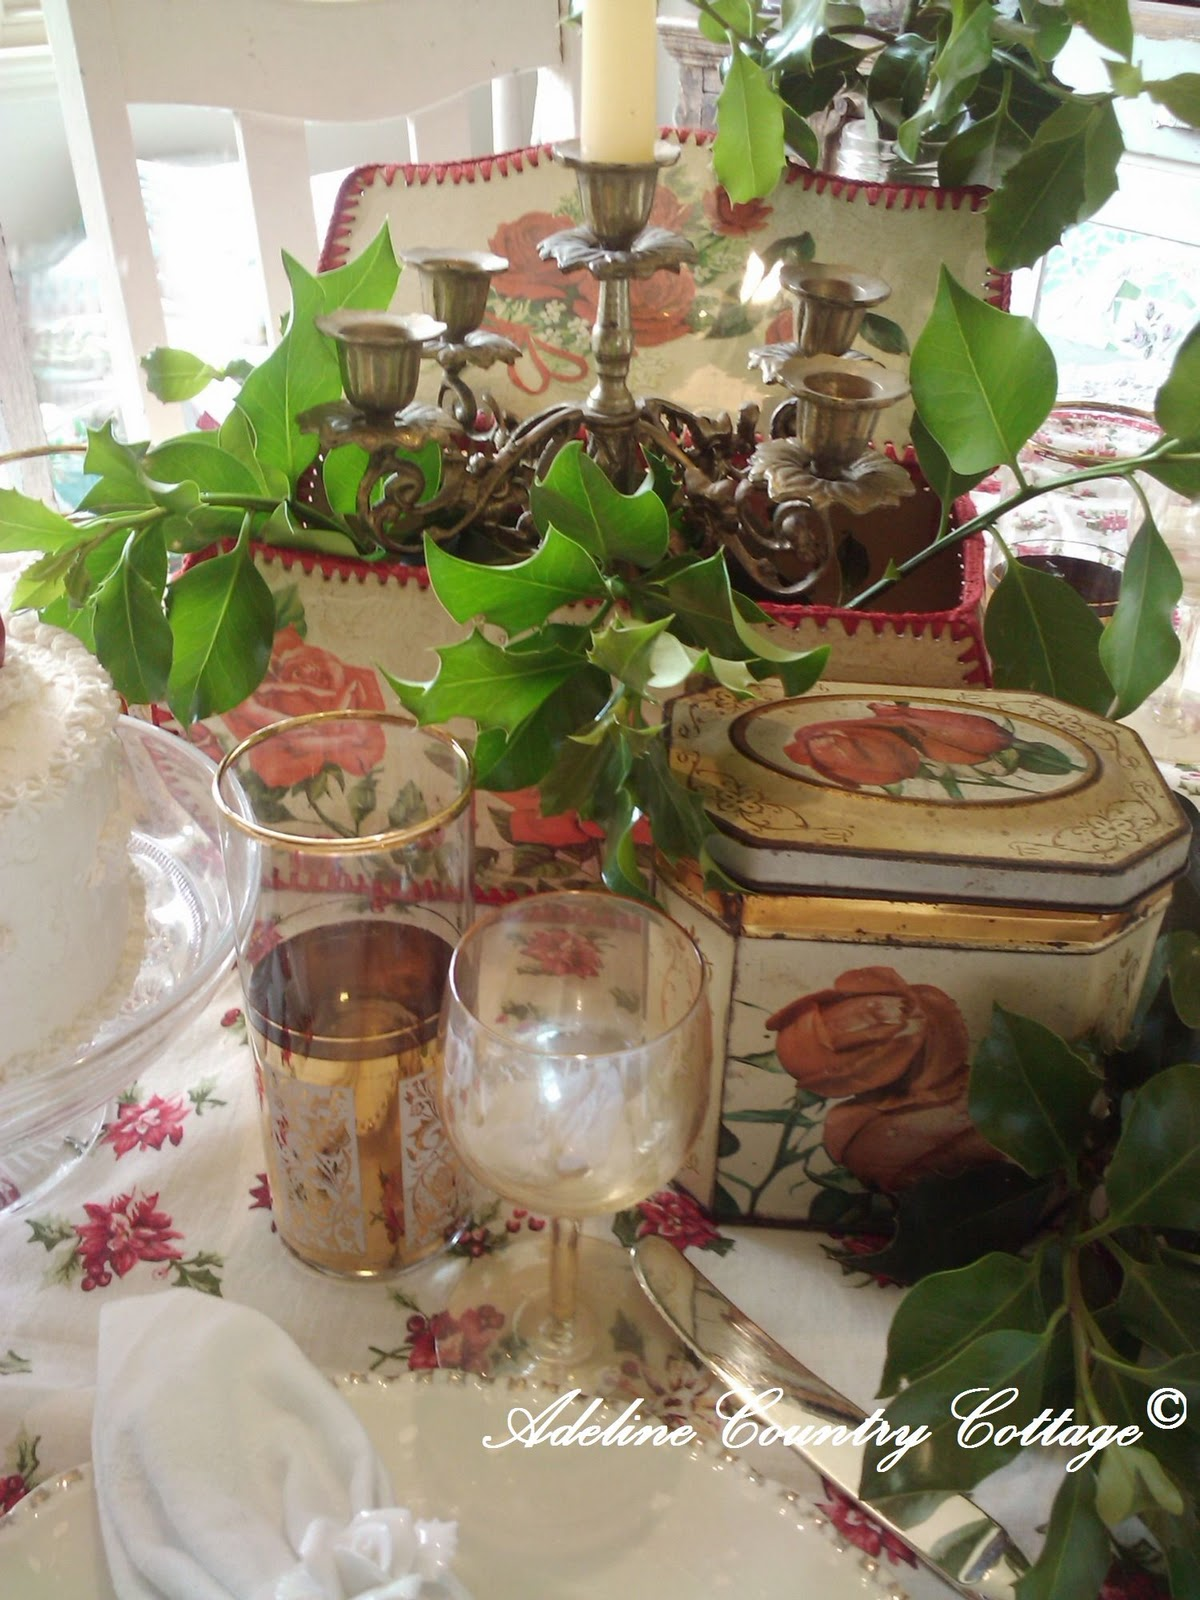 Inspiring Christmas Table Setting and Giveaway